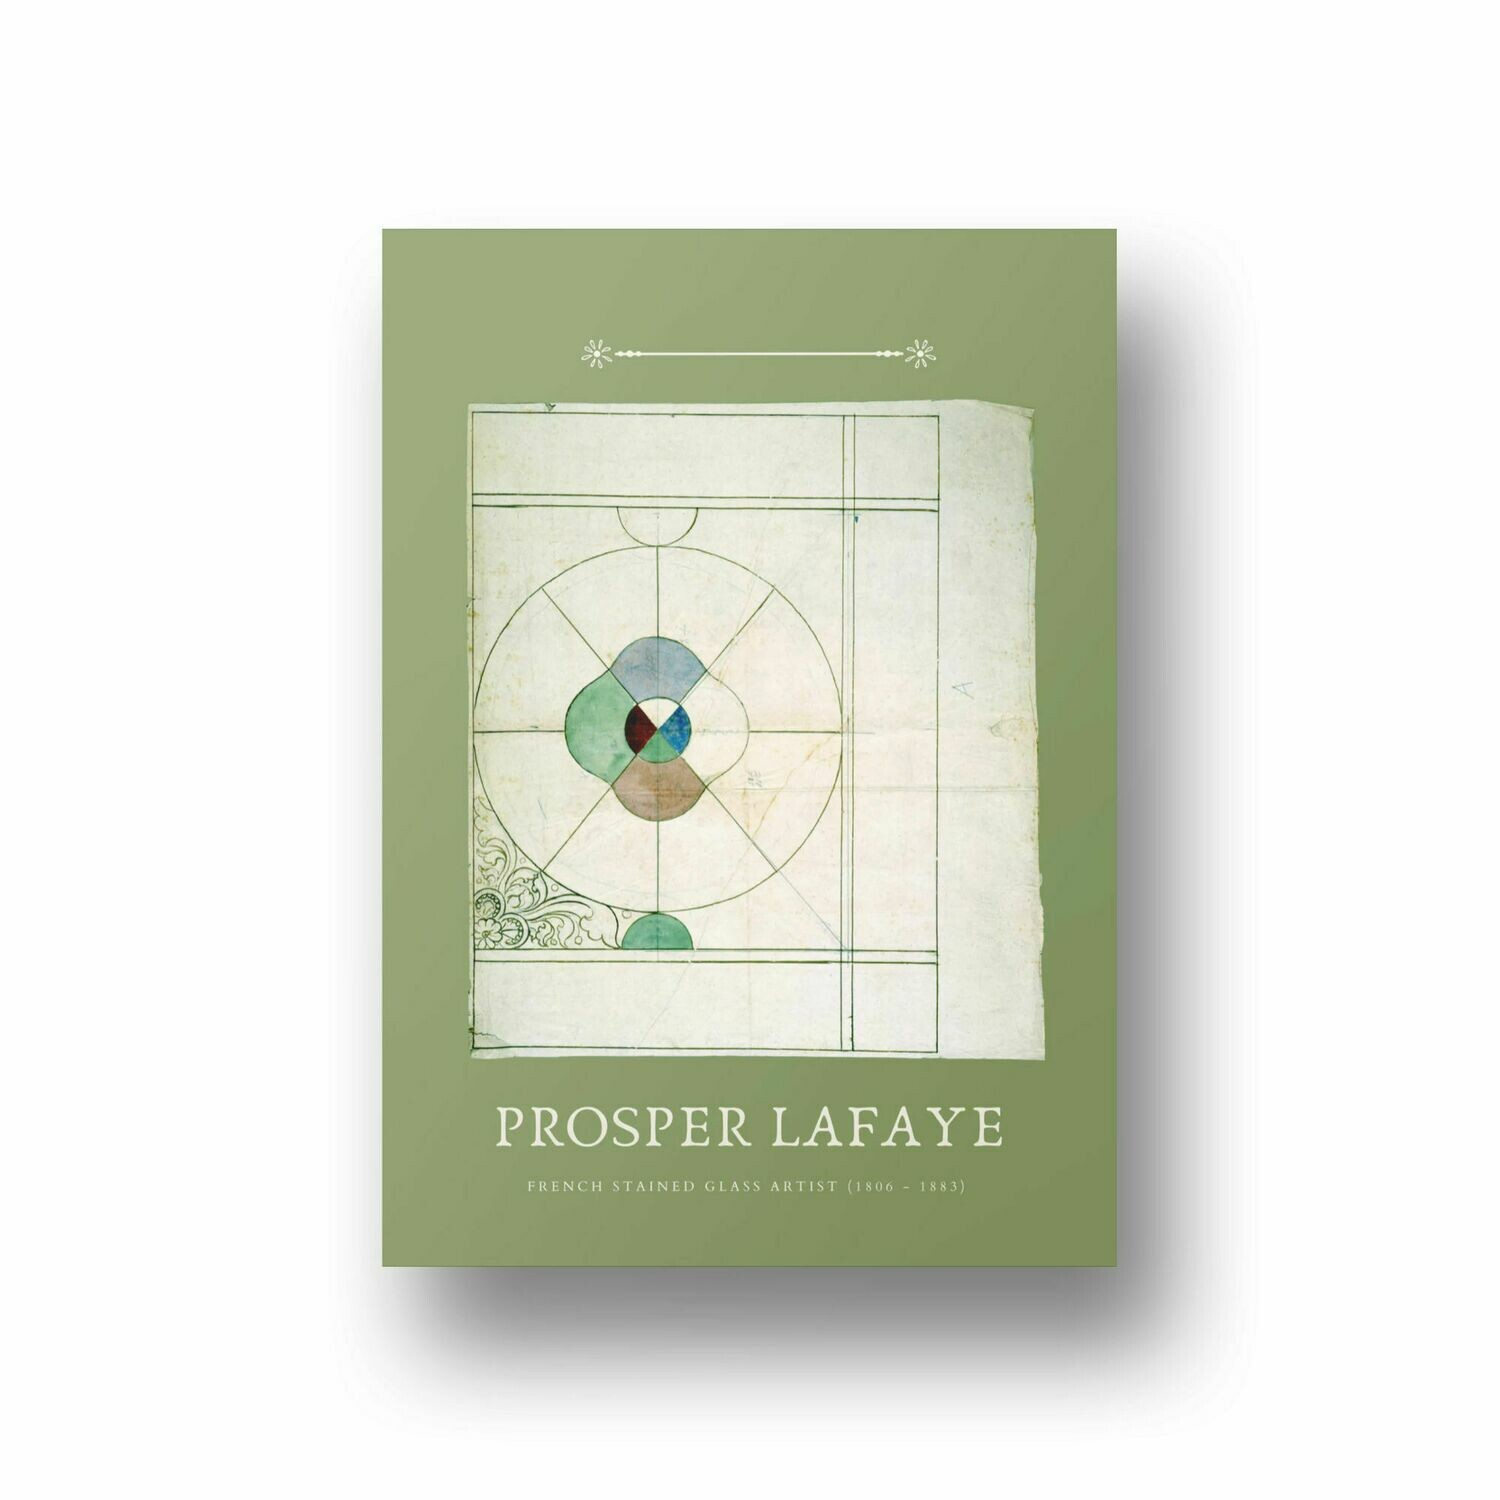 Prosper Lafaye, French Stained Glass Artist Edition 3